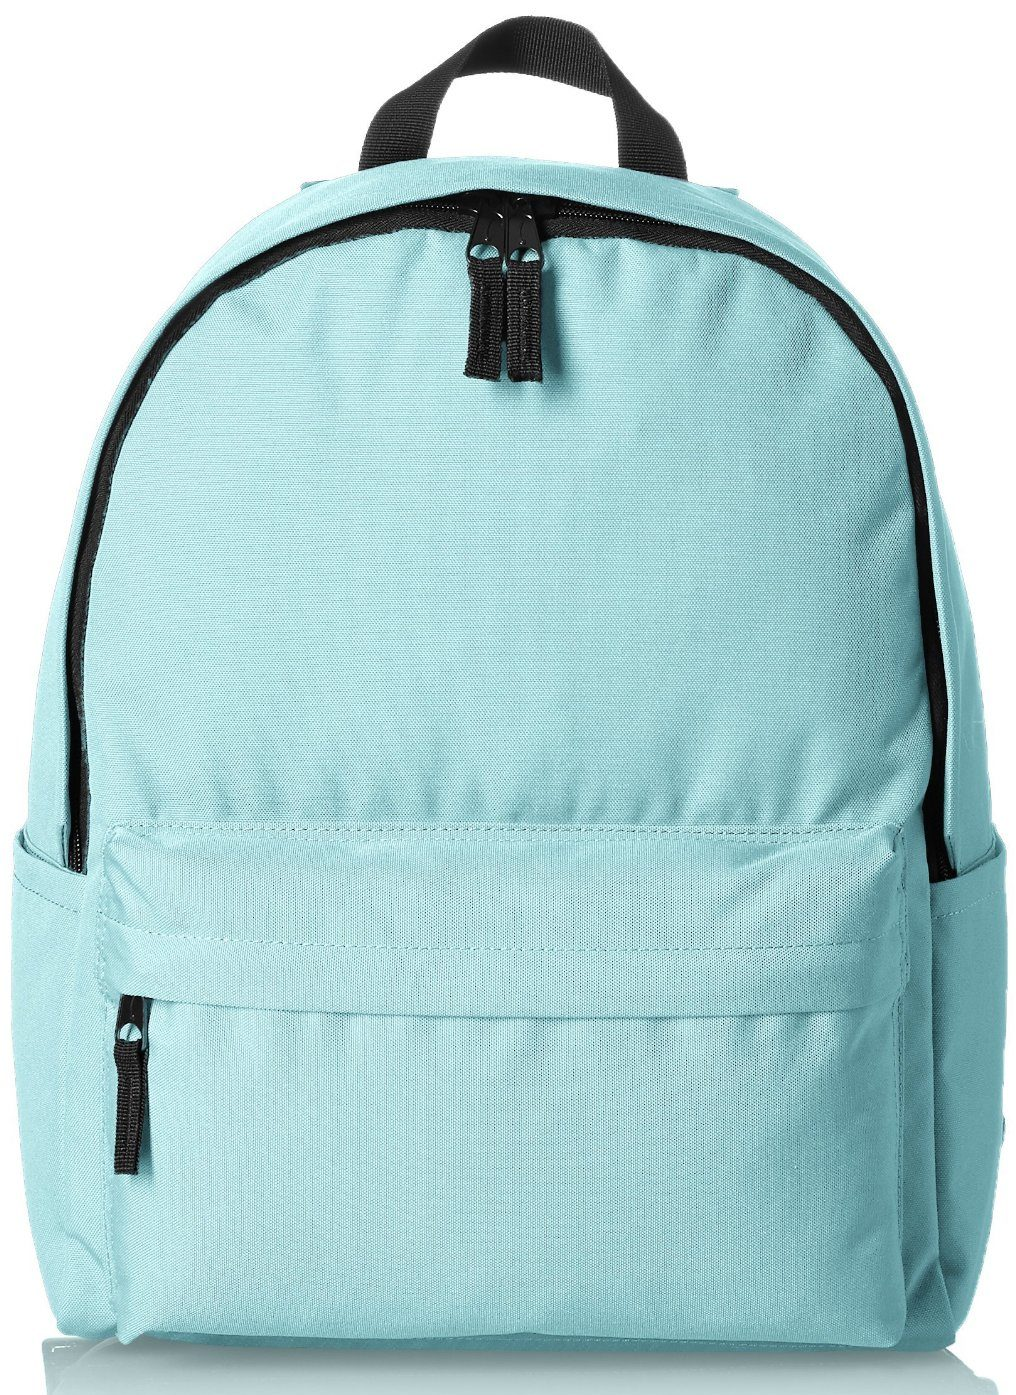 Amazon Basics Classic Backpack